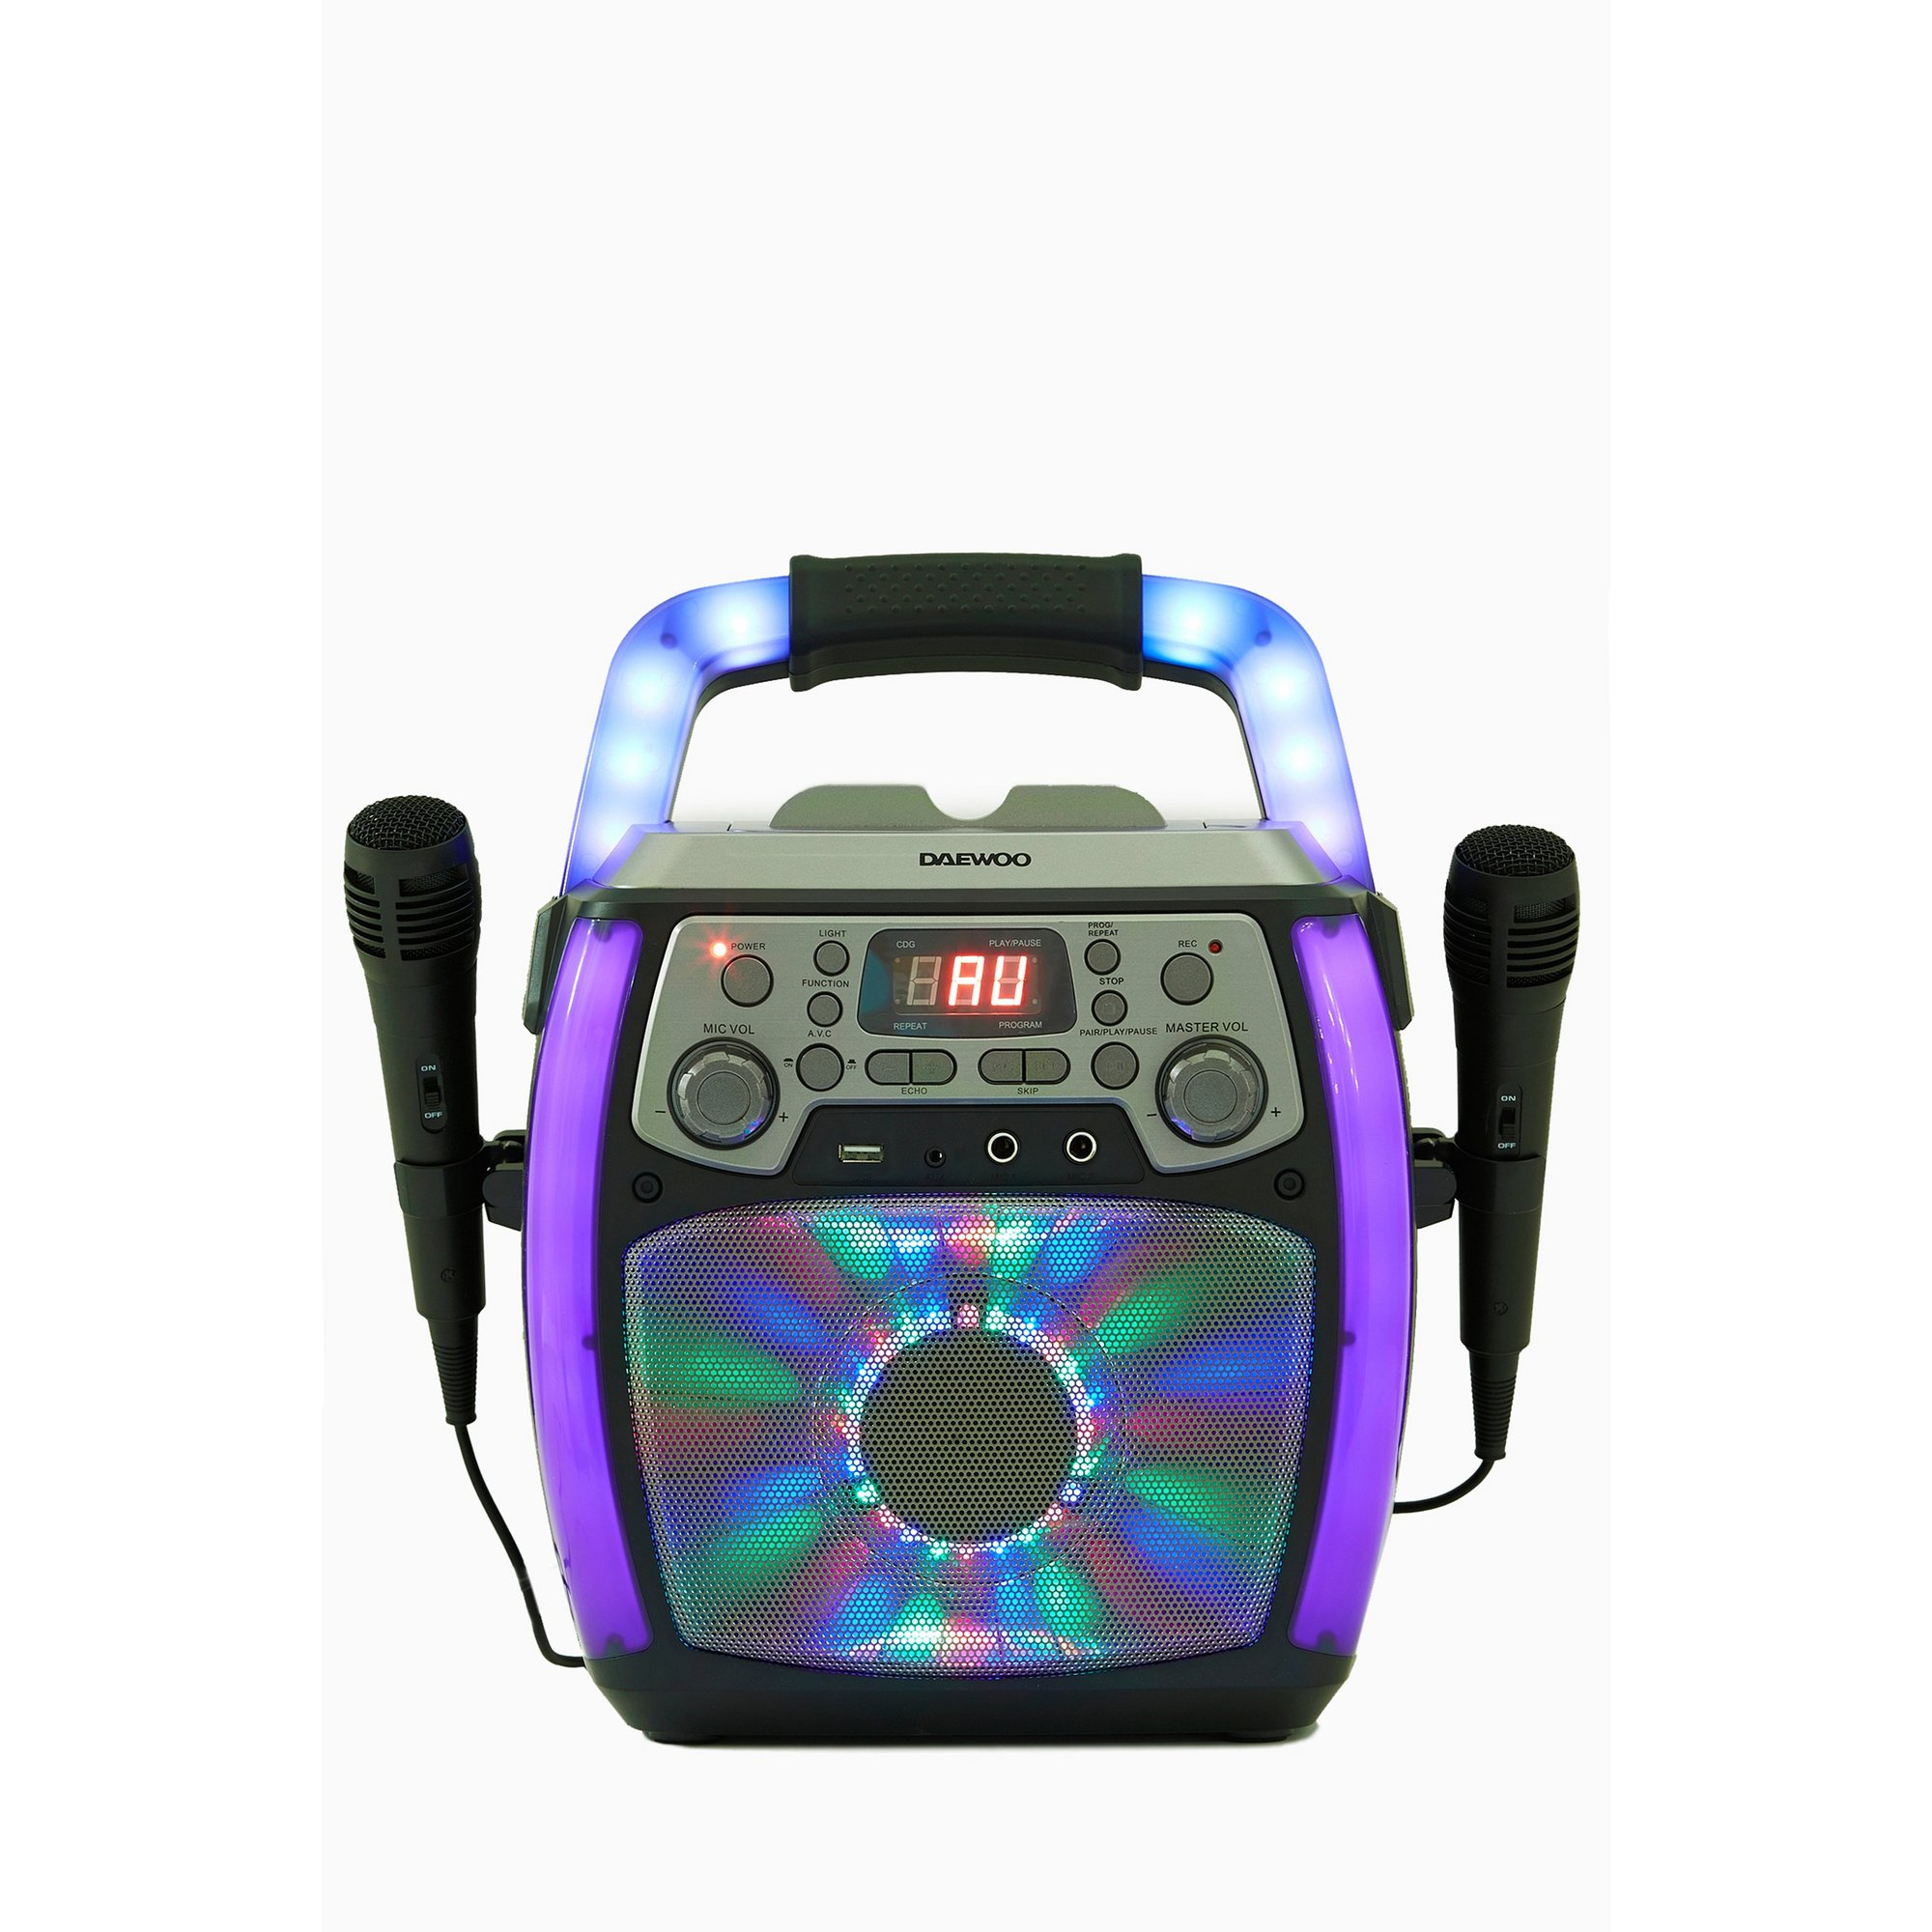 Image of Daewoo Bluetooth Karaoke Machine